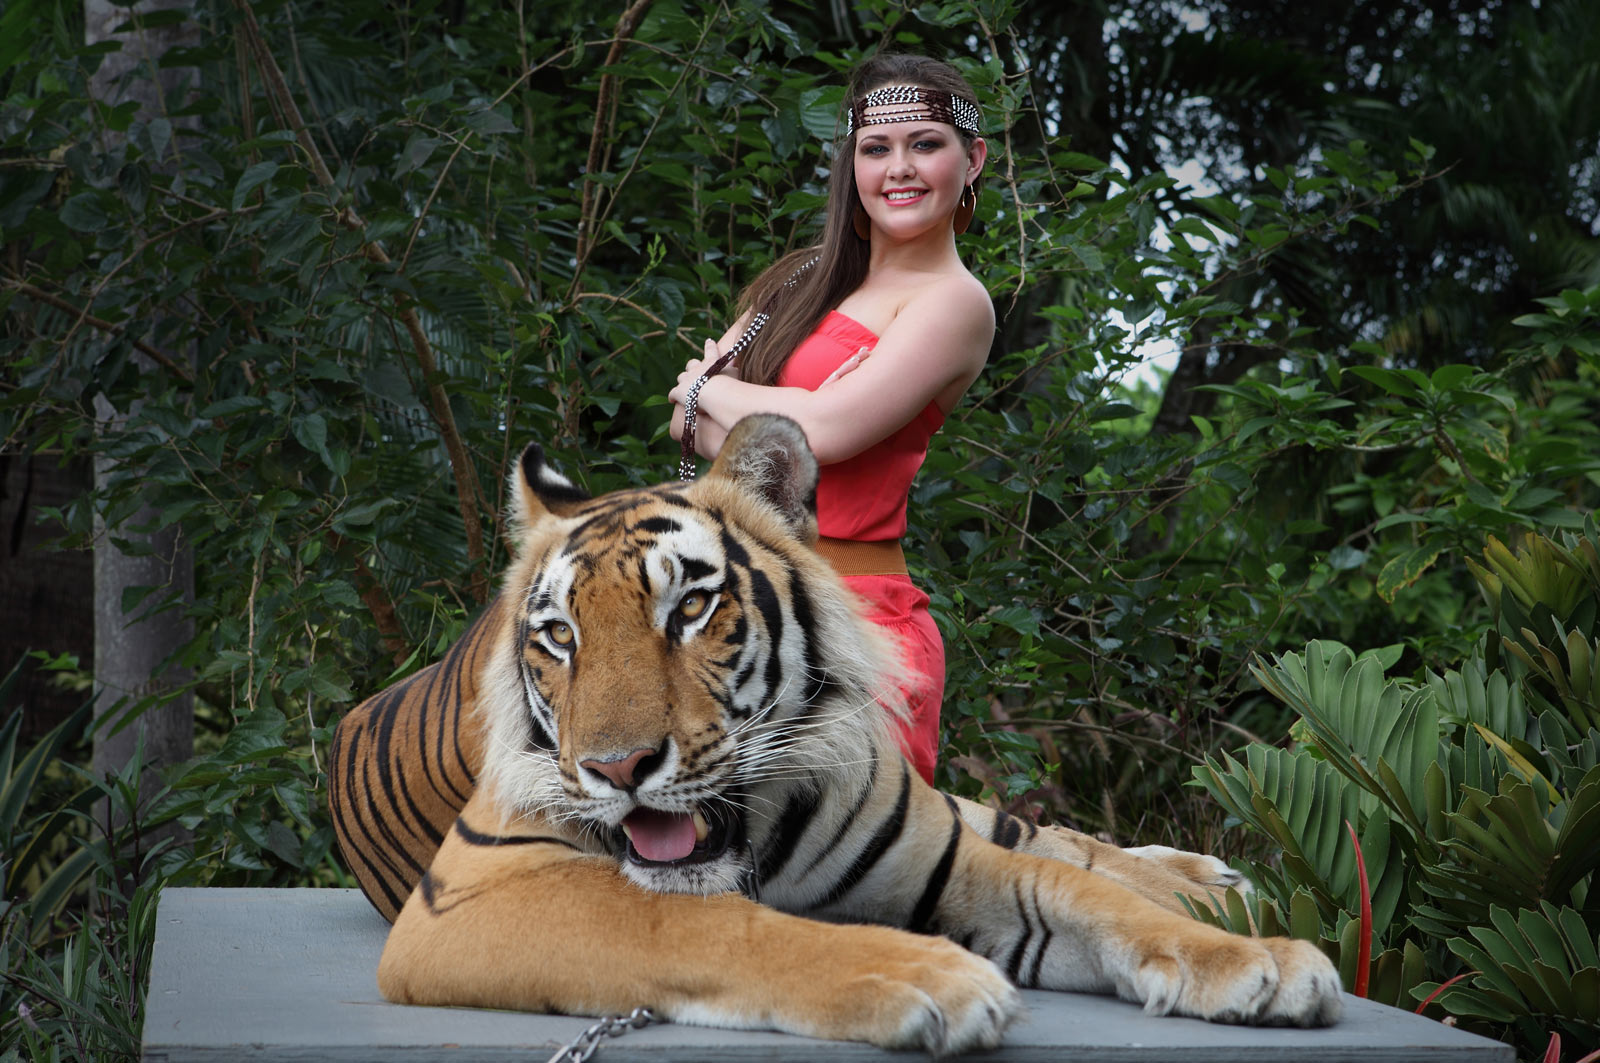 Brave Quinceanera Model posing with Tiger